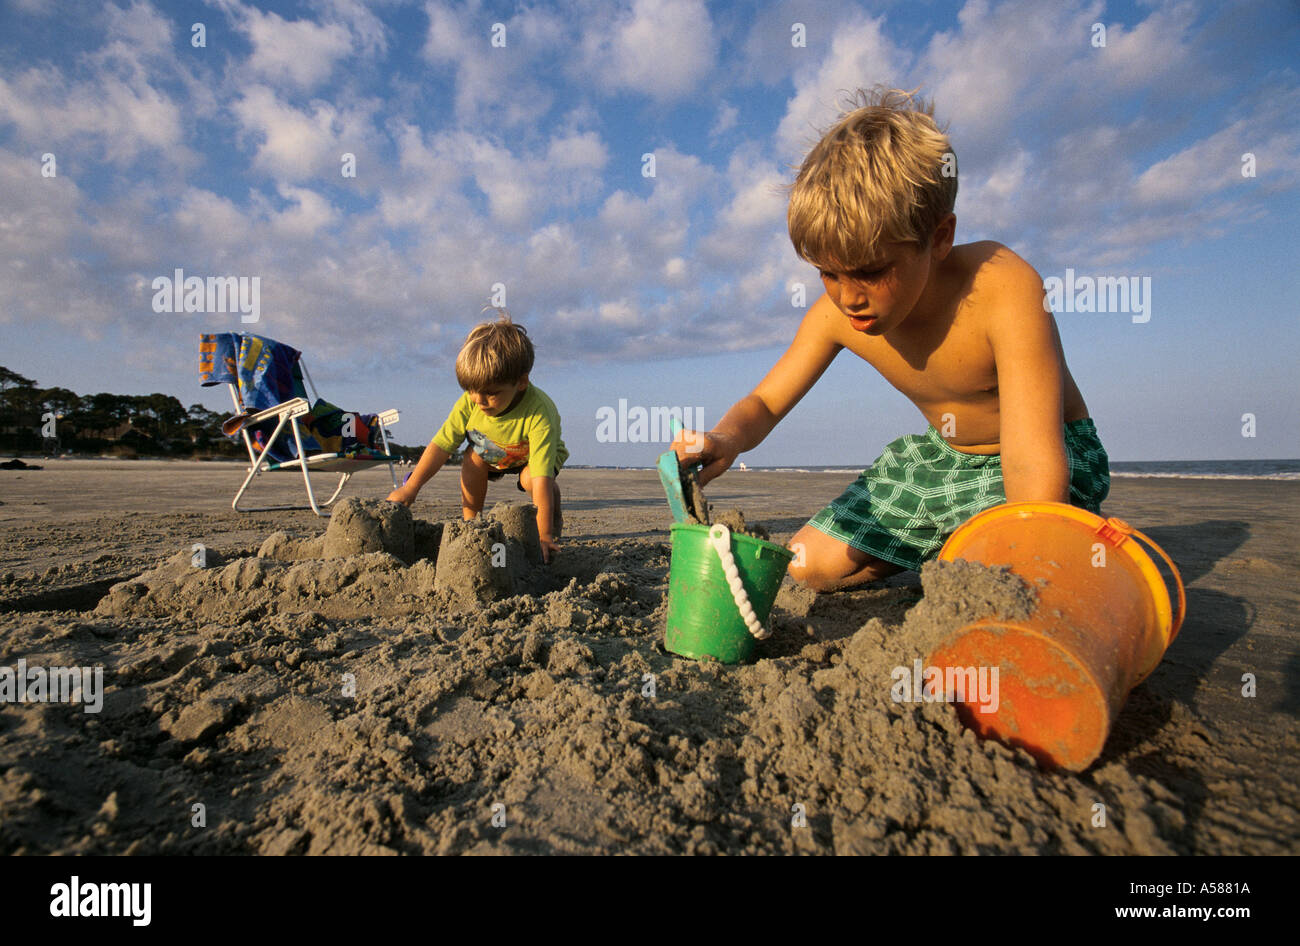 Two young boys playing in the sand and making sandcastles at the beach - Stock Image